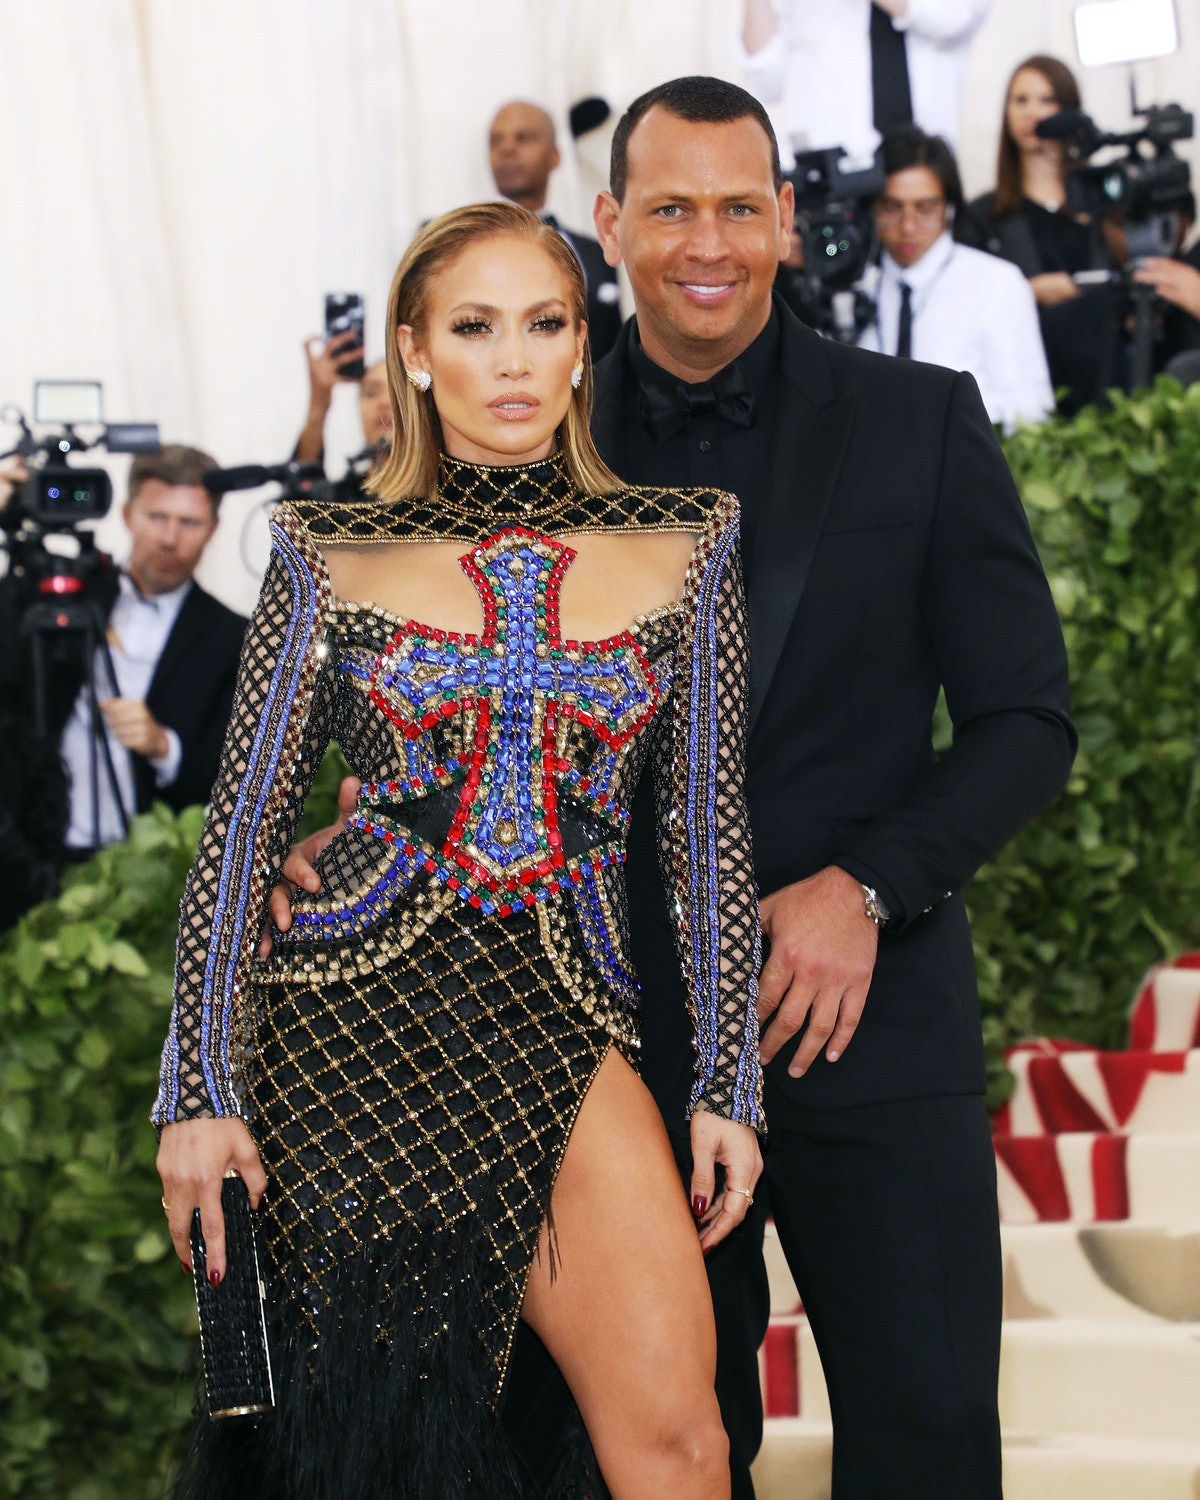 NEW YORK, NY - MAY 07:   Jennifer Lopez and AROD attend the Heavenly Bodies: Fashion & The Catholic Imagination Costume Institute Gala at The Metropolitan Museum of Art on May 7, 2018 in New York City.